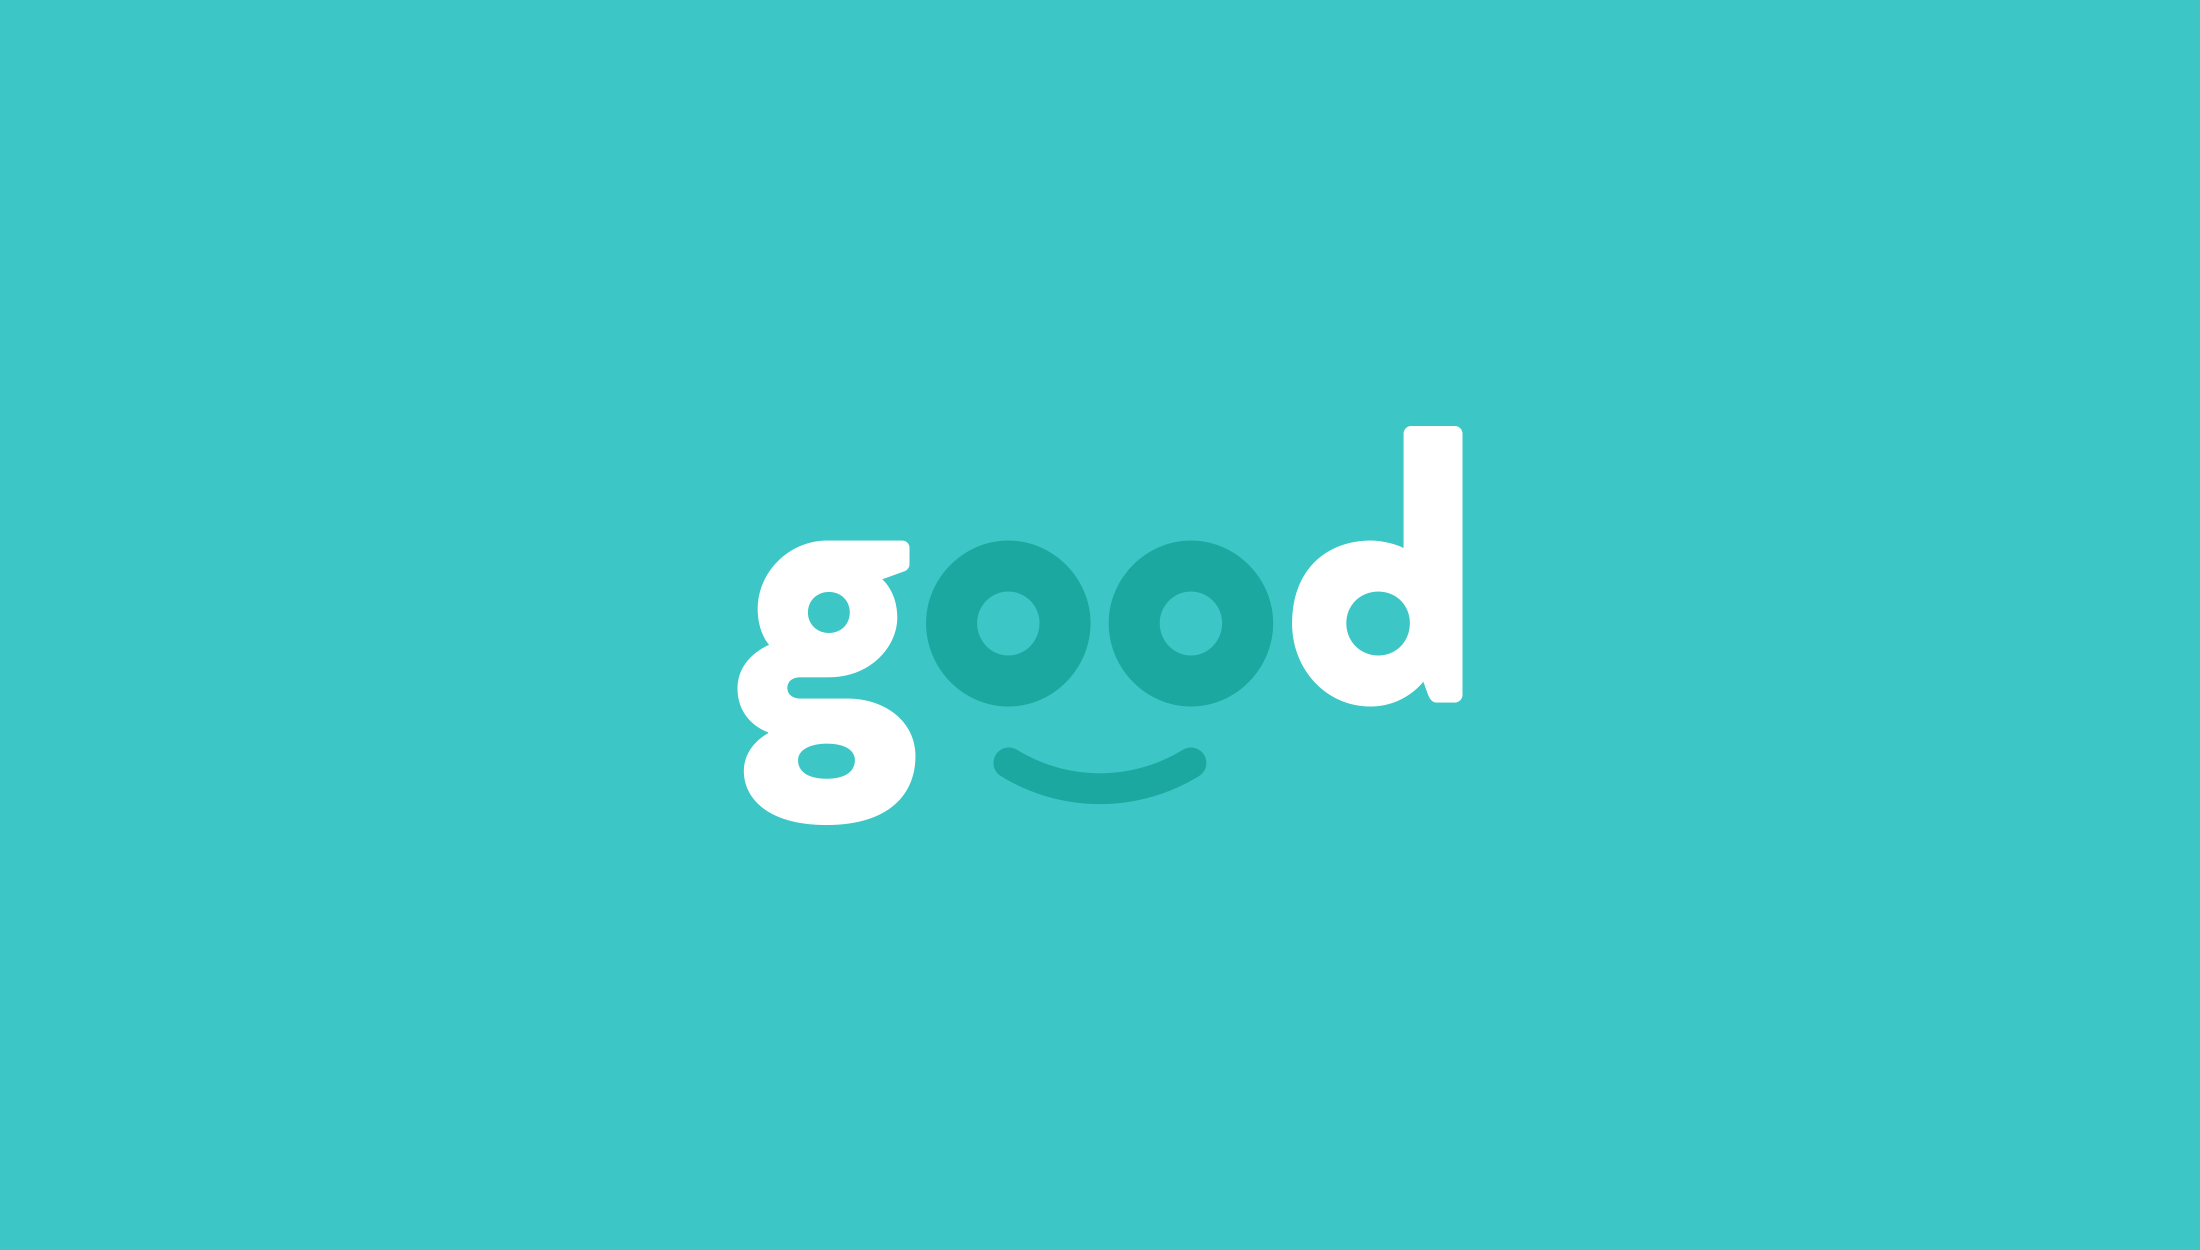 Final logomark for The Good Marketing Co, a health and wellness marketing agency with honest and ethical values - designed by Wiltshire-based graphic designer, Kaye Huett